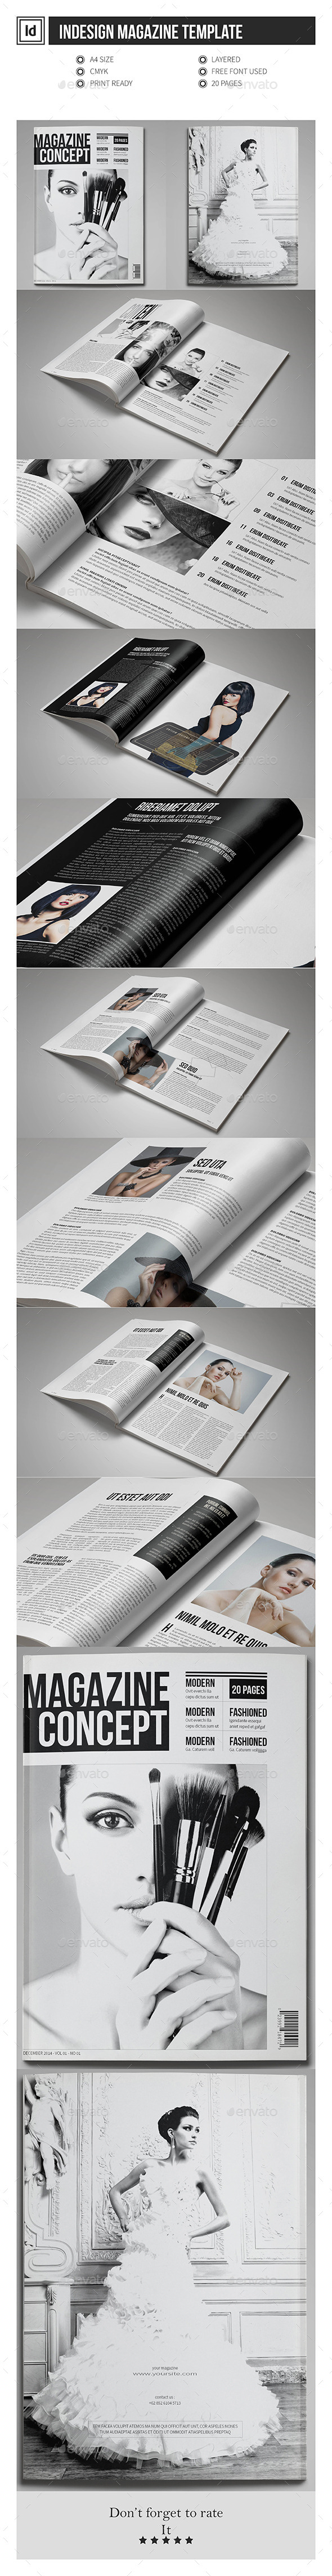 Multipurpose InDesign Magazine Template - Magazines Print Templates